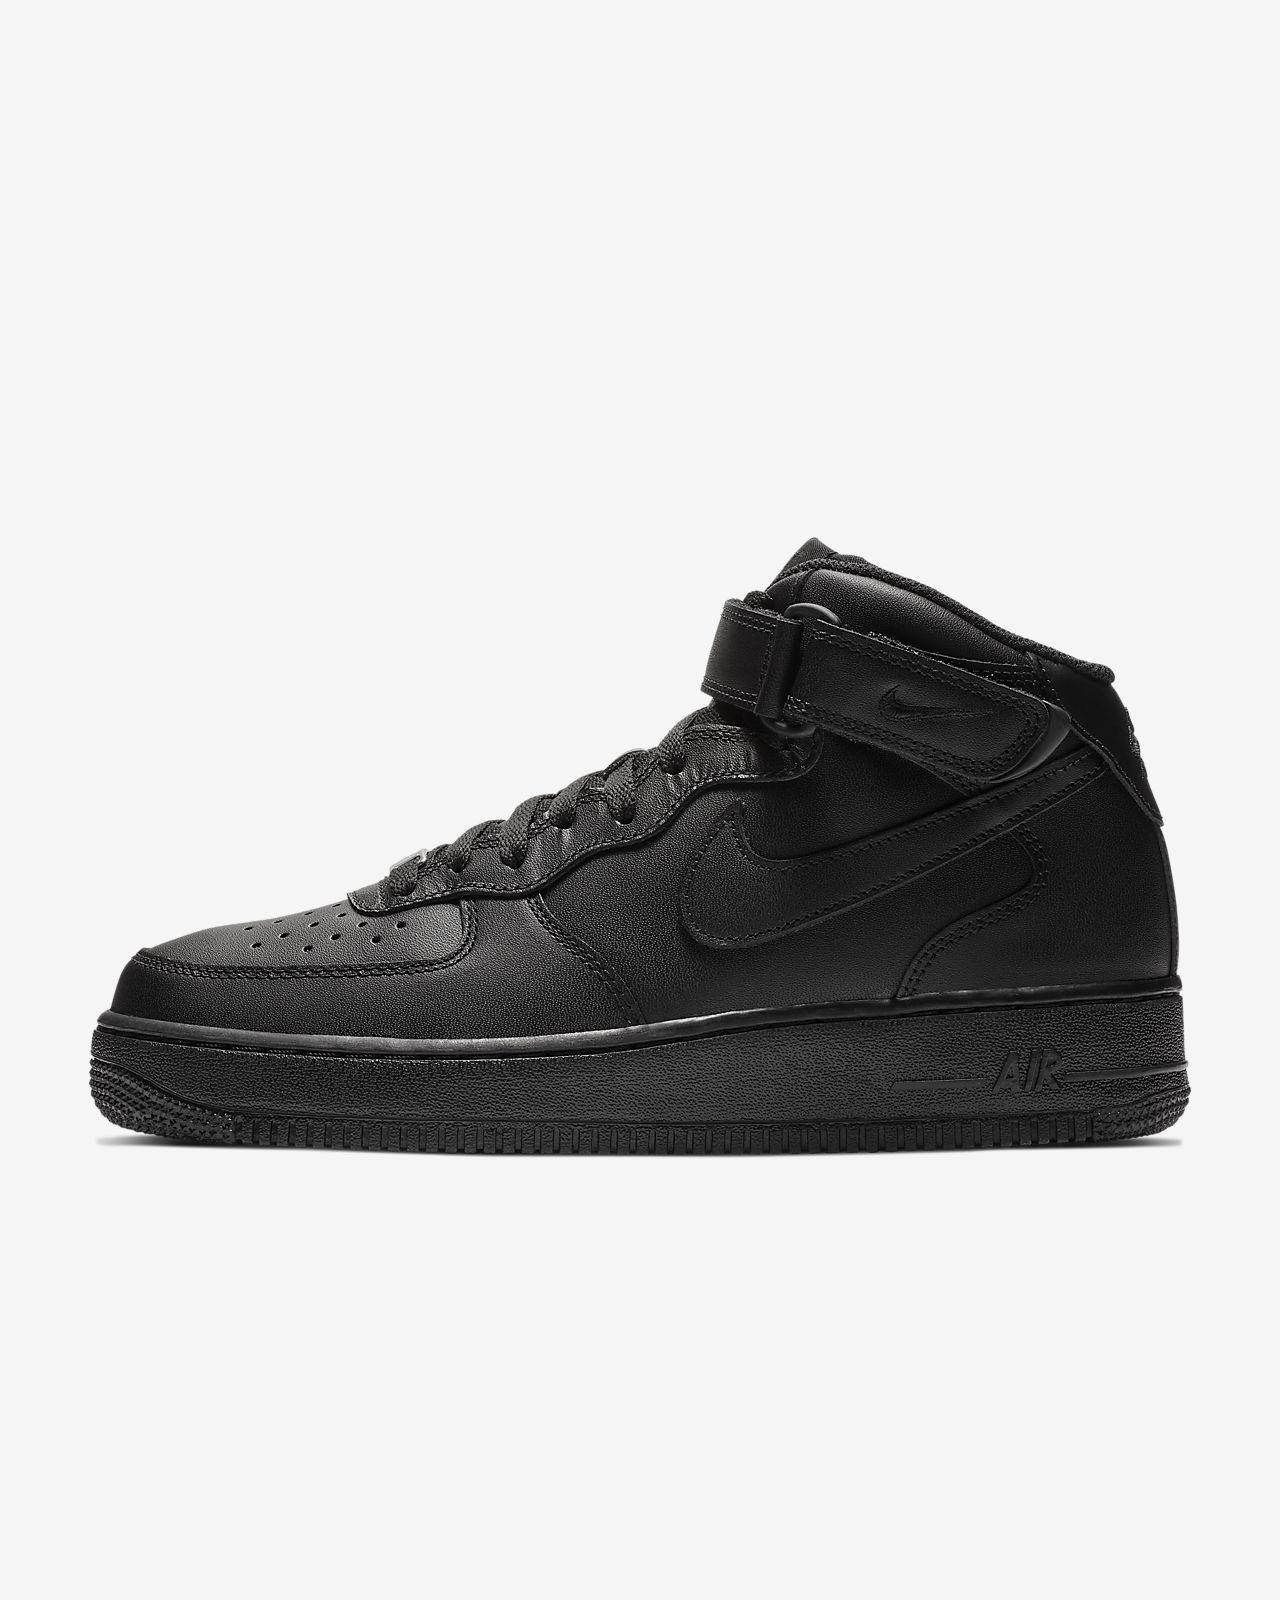 low priced 065d2 abbbe ... Buty męskie Nike Air Force 1 Mid 07